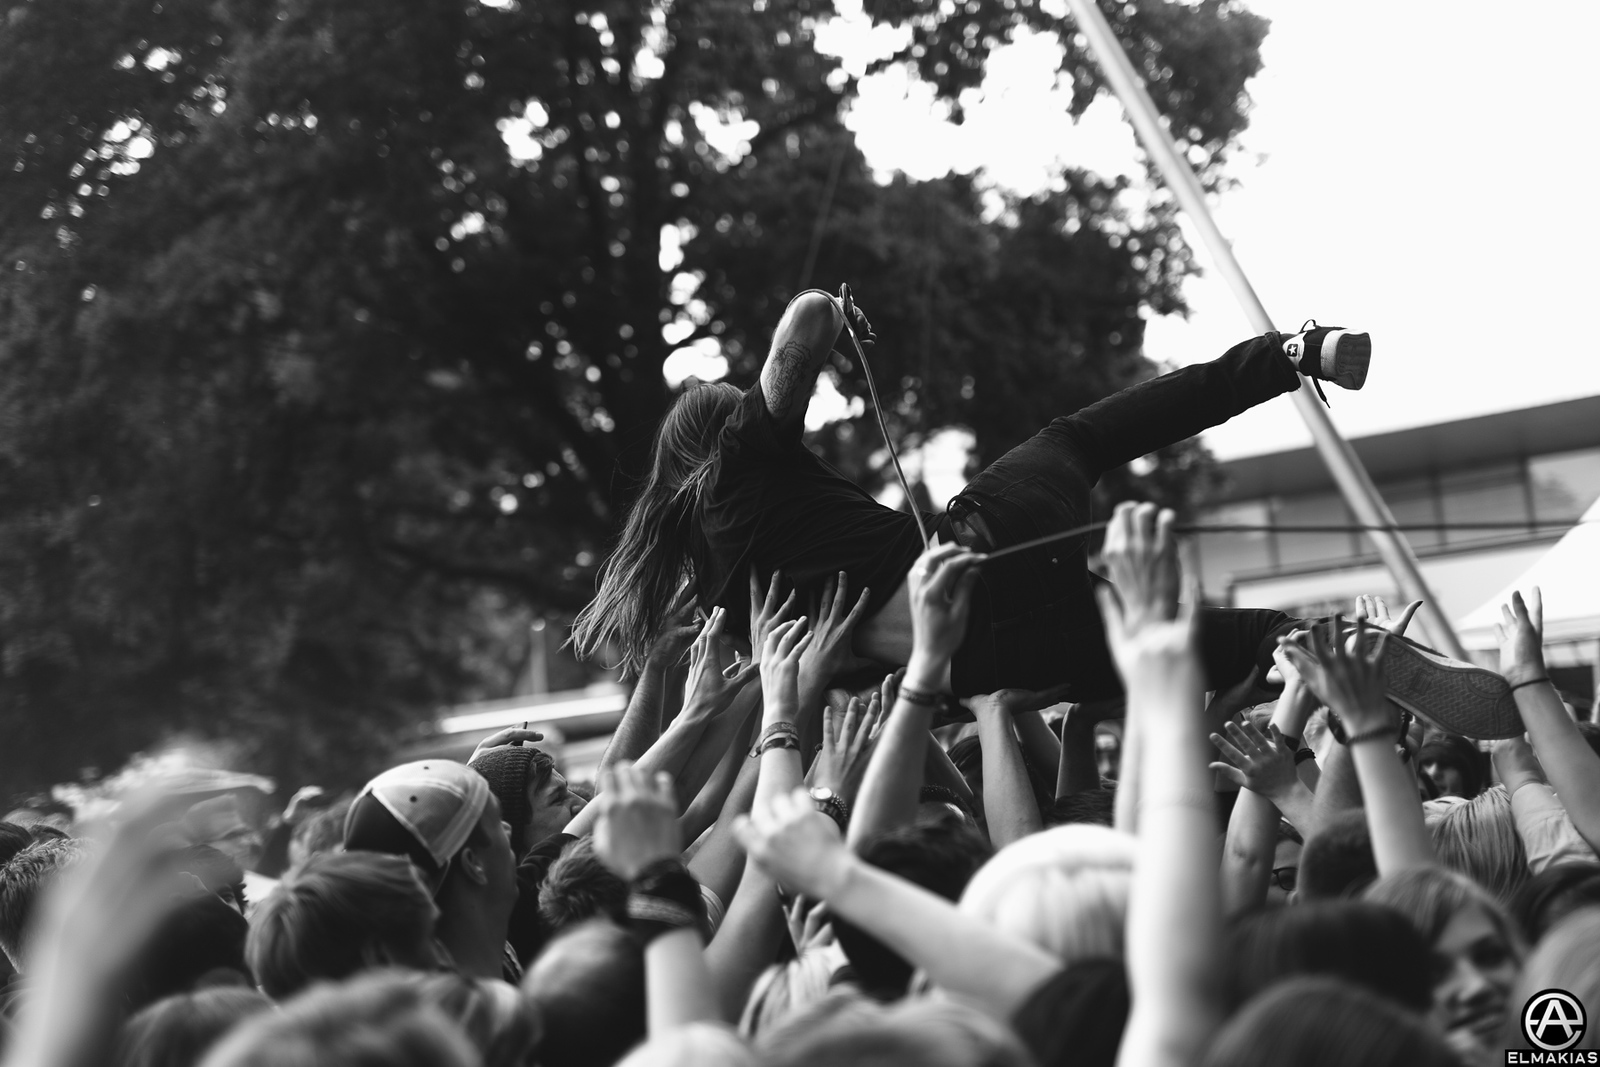 While She Sleeps live at Rawk Attack in Germany